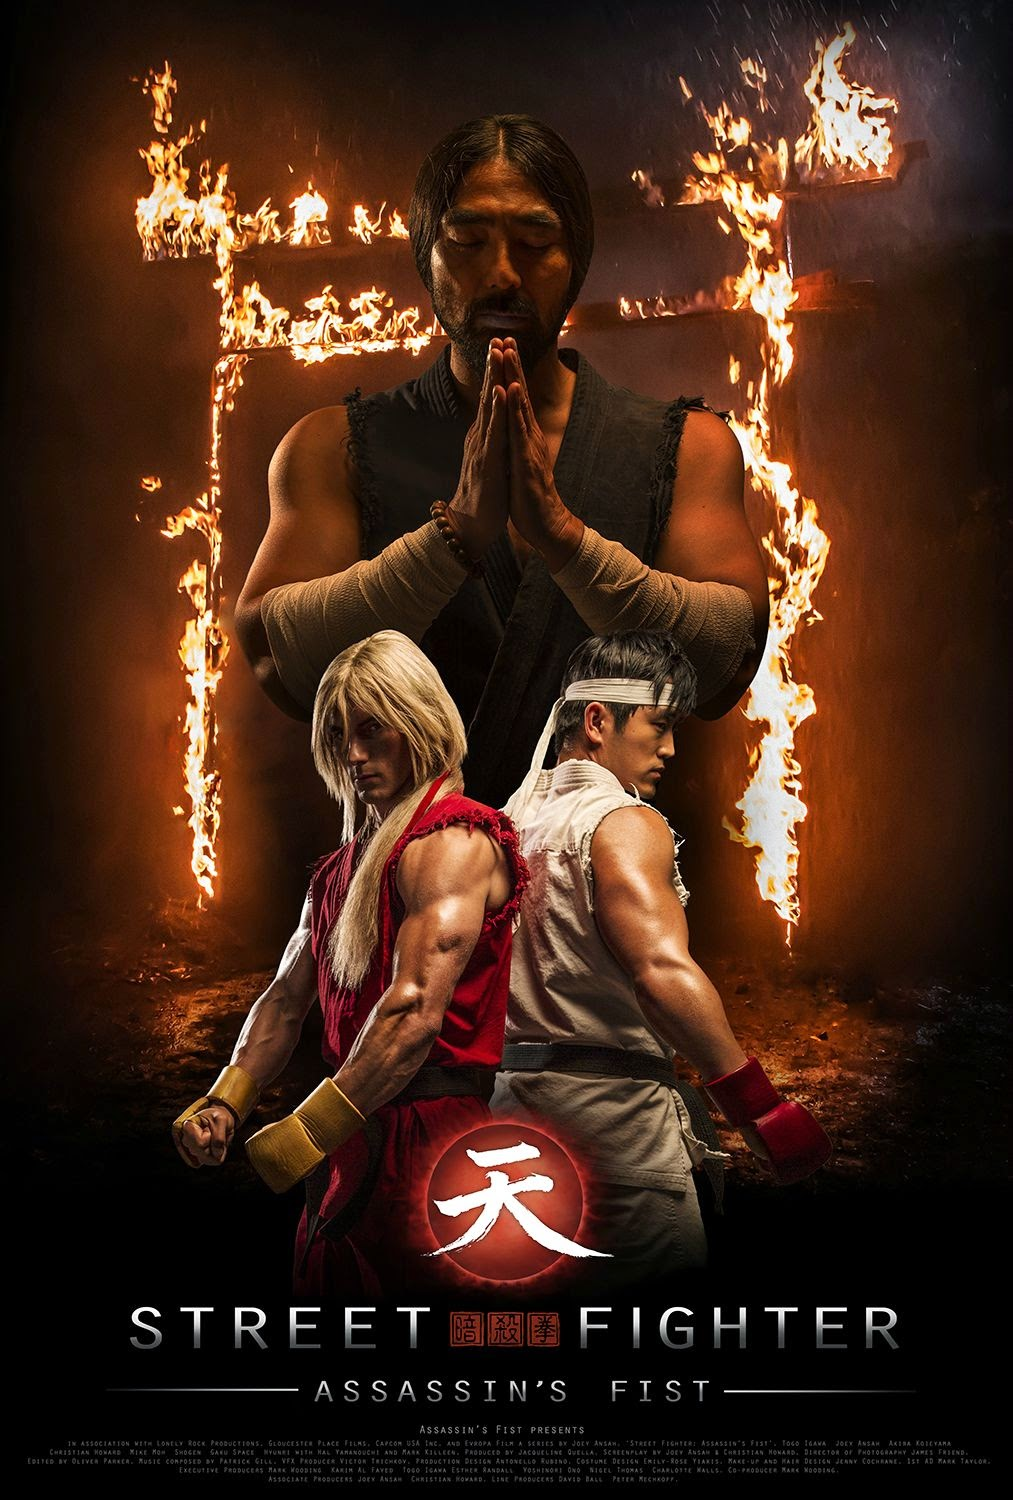 IL FILM DAL VIVO DI STREET FIGHTER, TRAILER DI ASSASSIN'S FIST